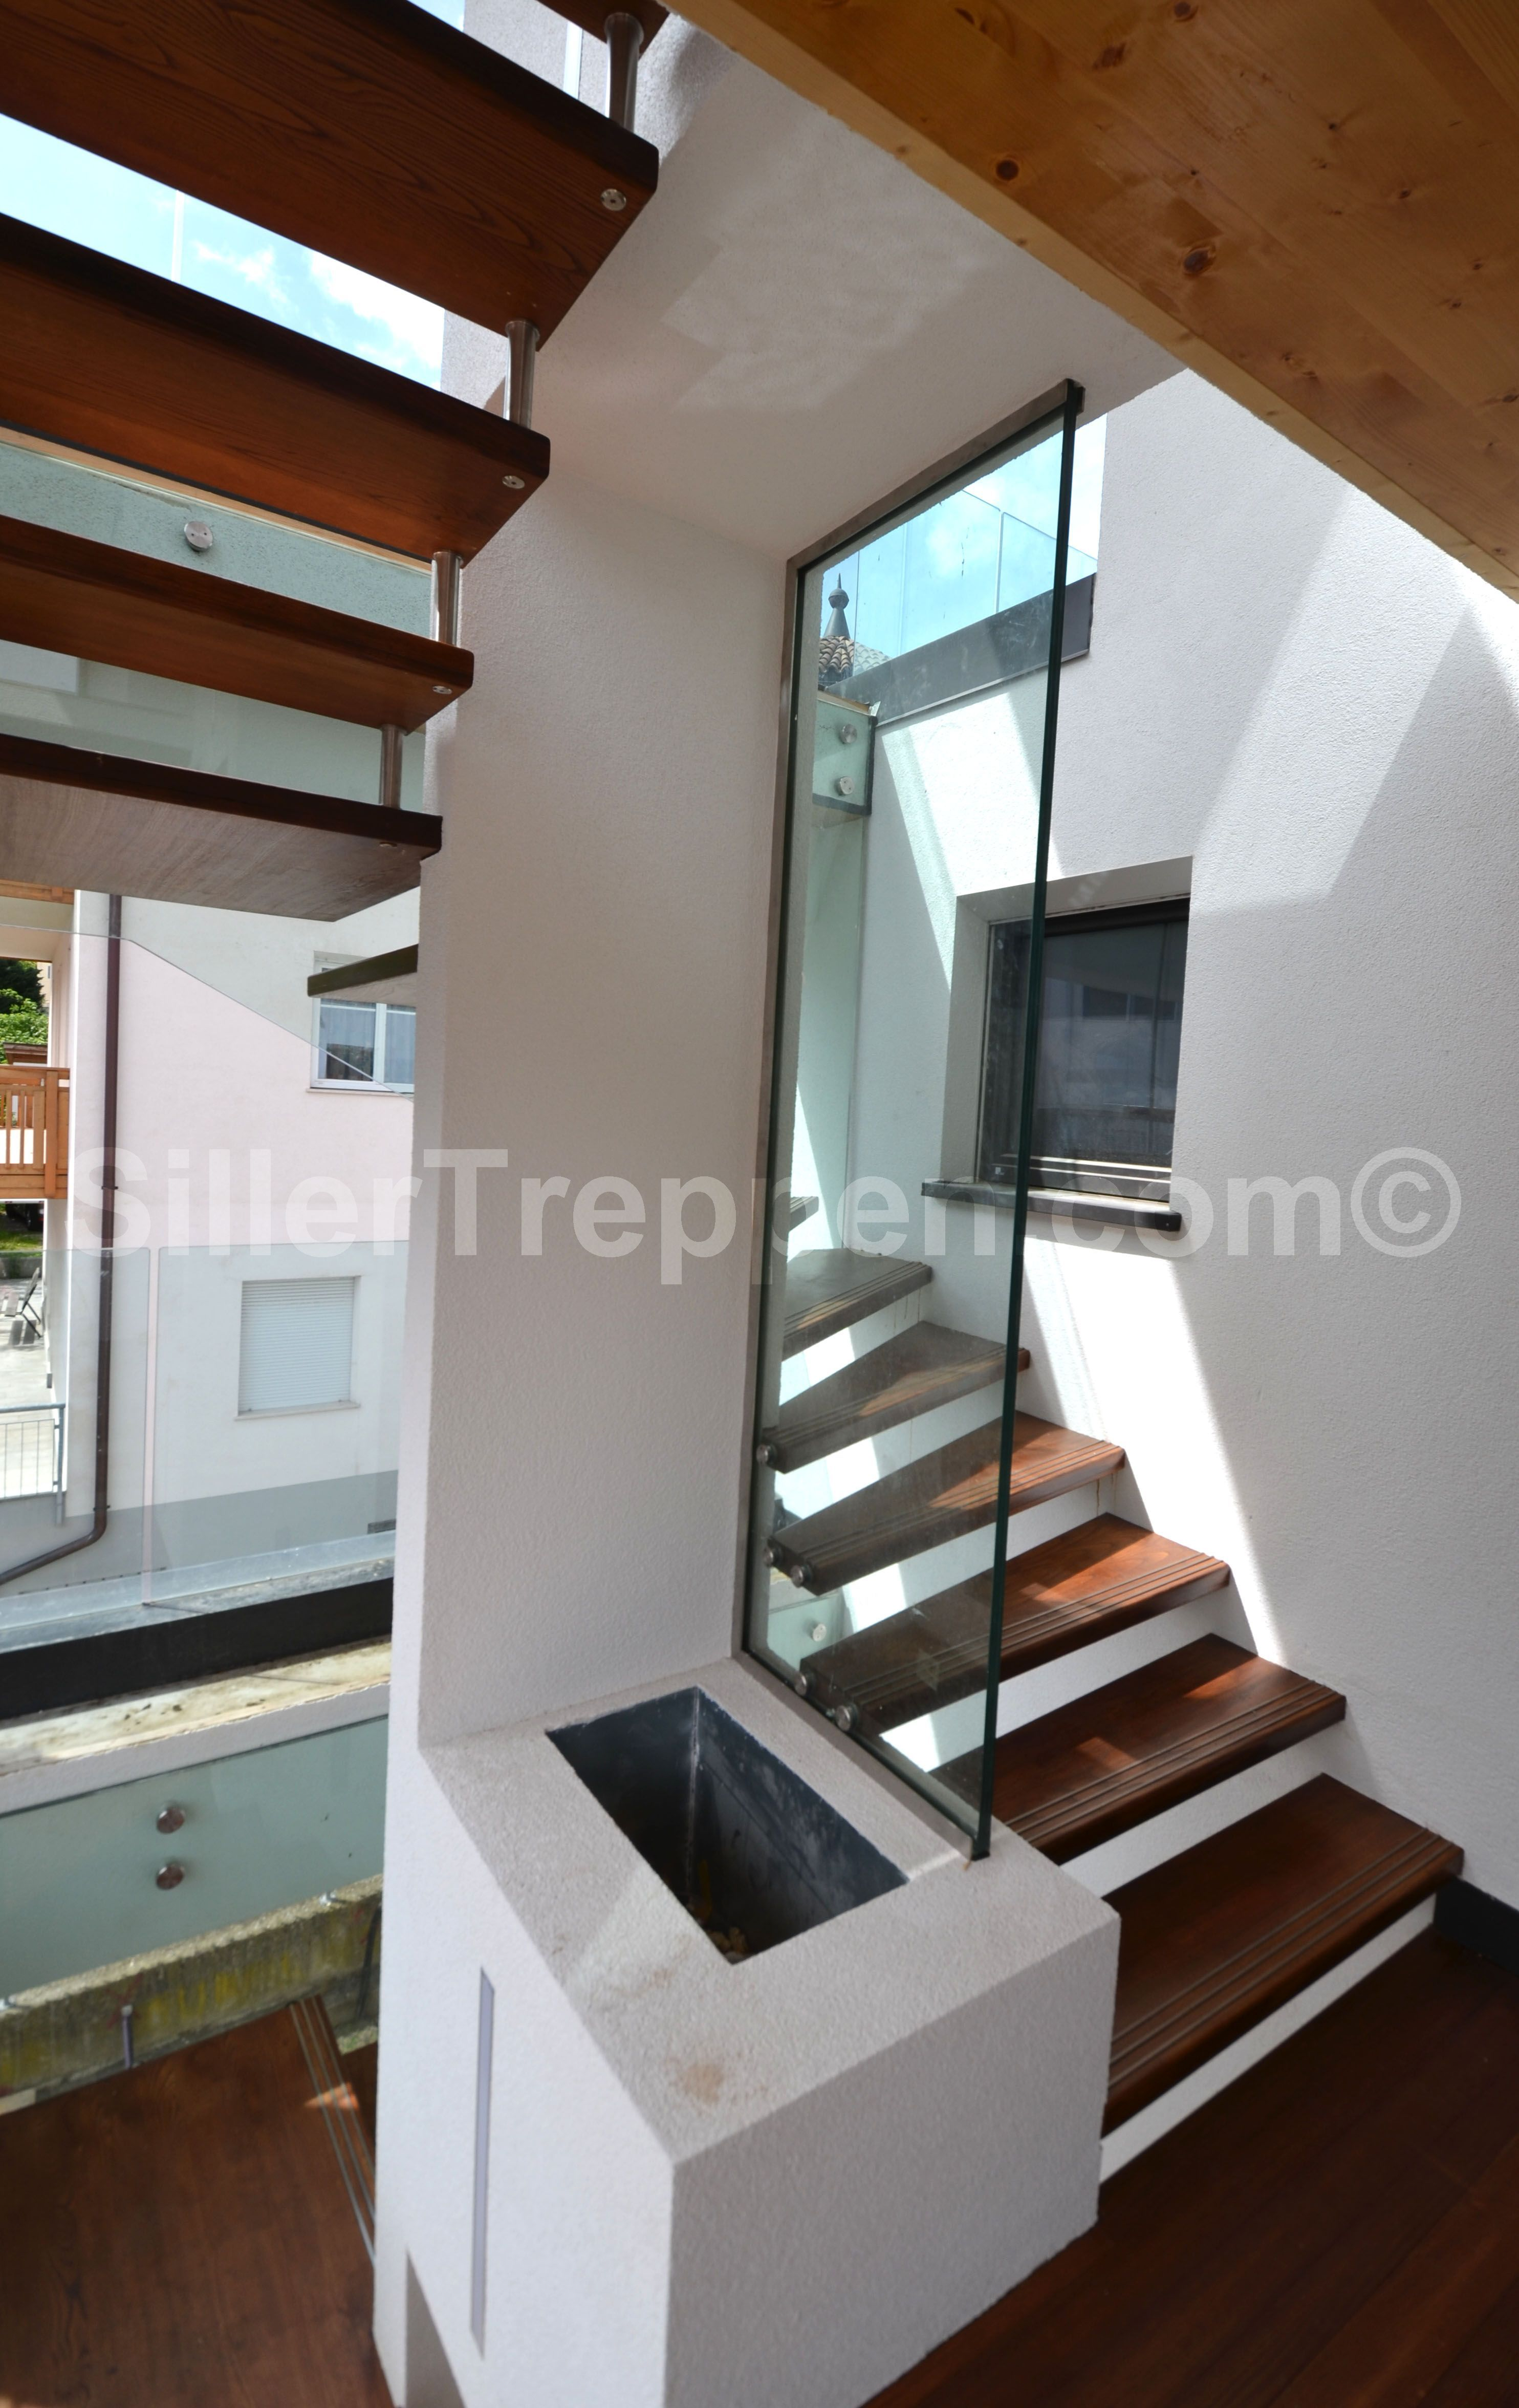 Best Floating Stair With Wood Treads Structural Glass Railing 640 x 480